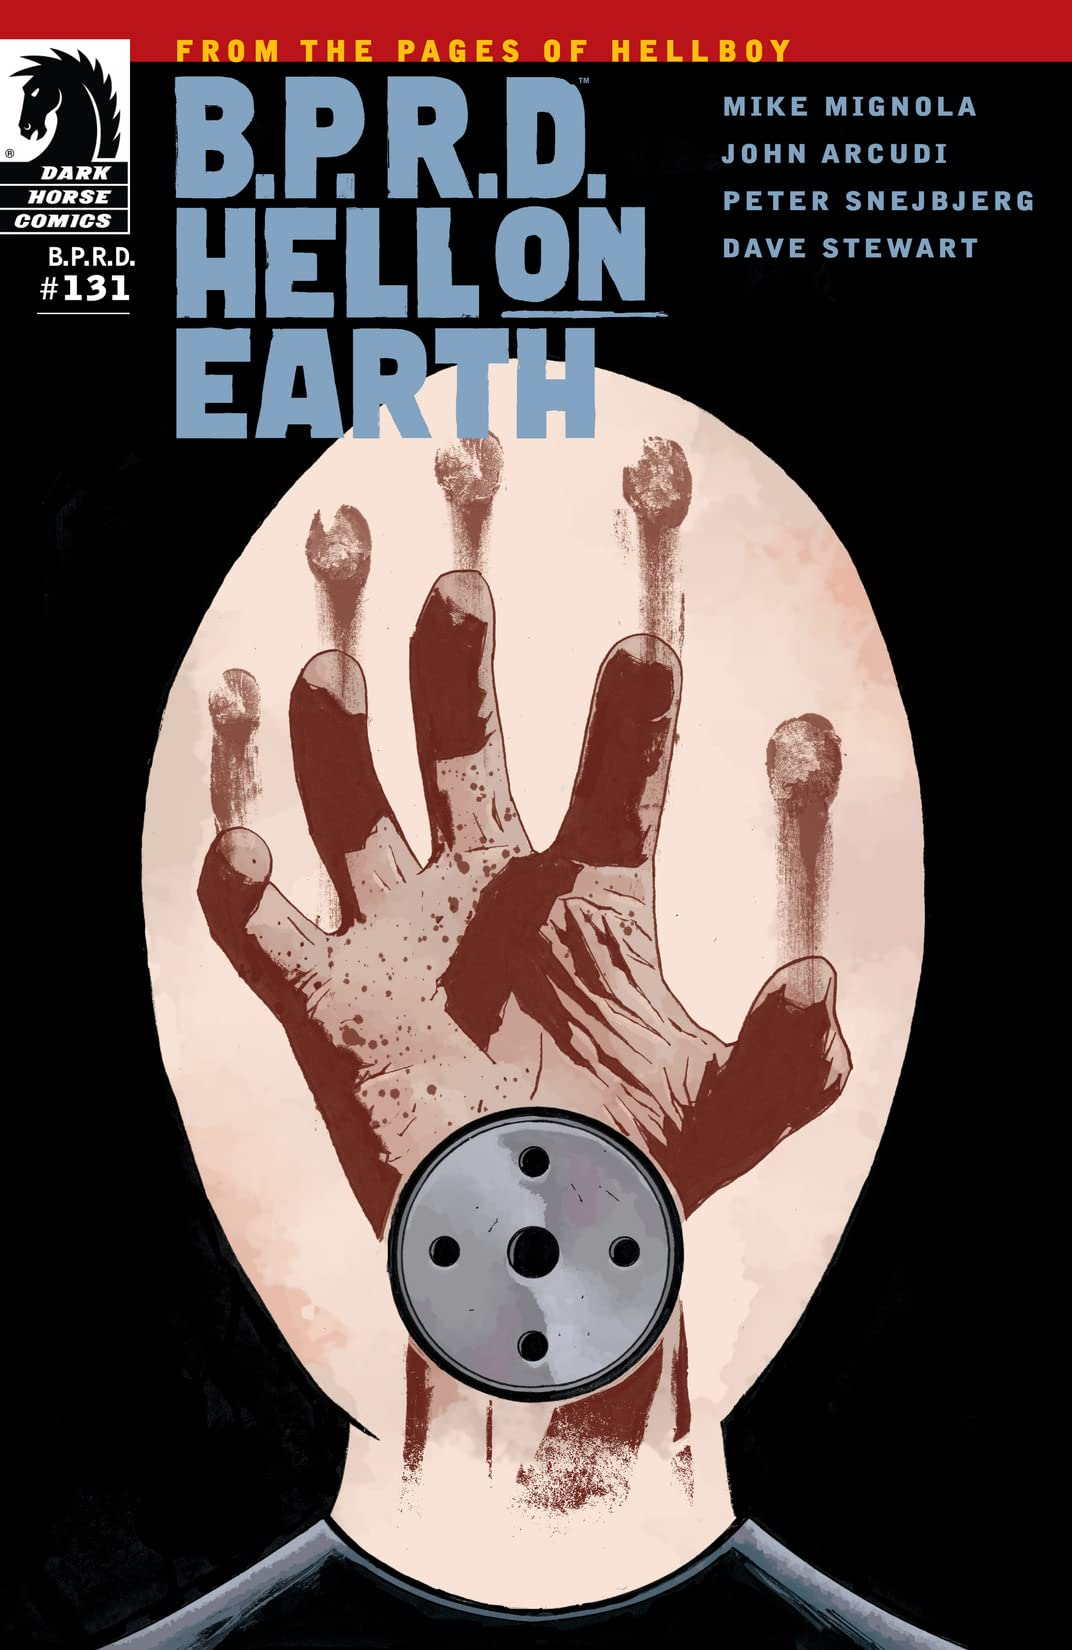 B.P.R.D.: Hell on Earth #131